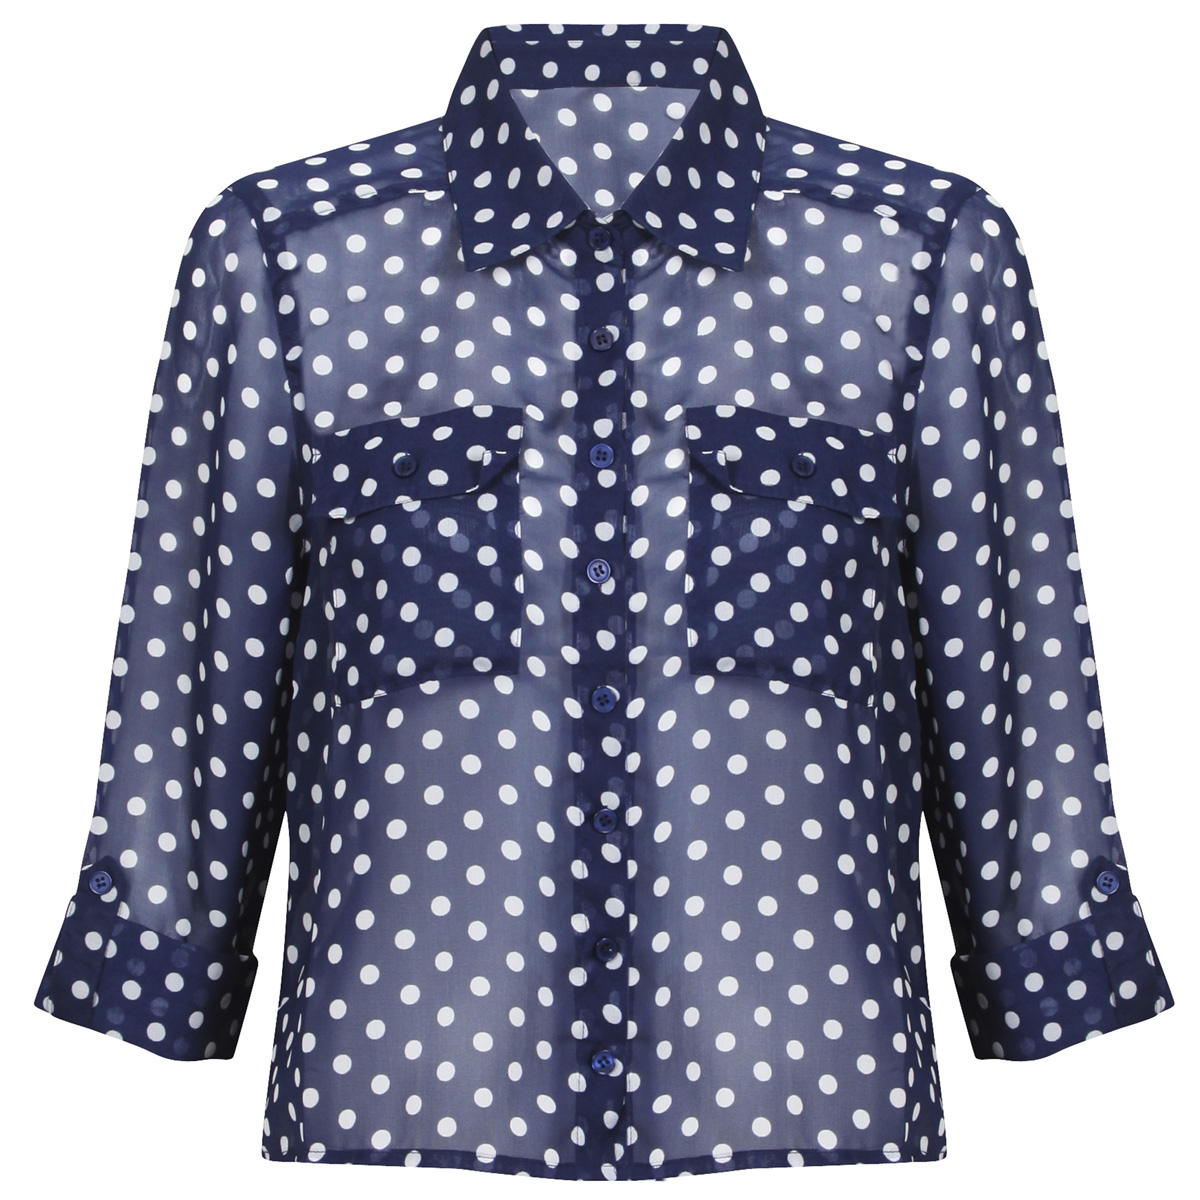 new womens navy blue polka dot hip hem blouse shirt top